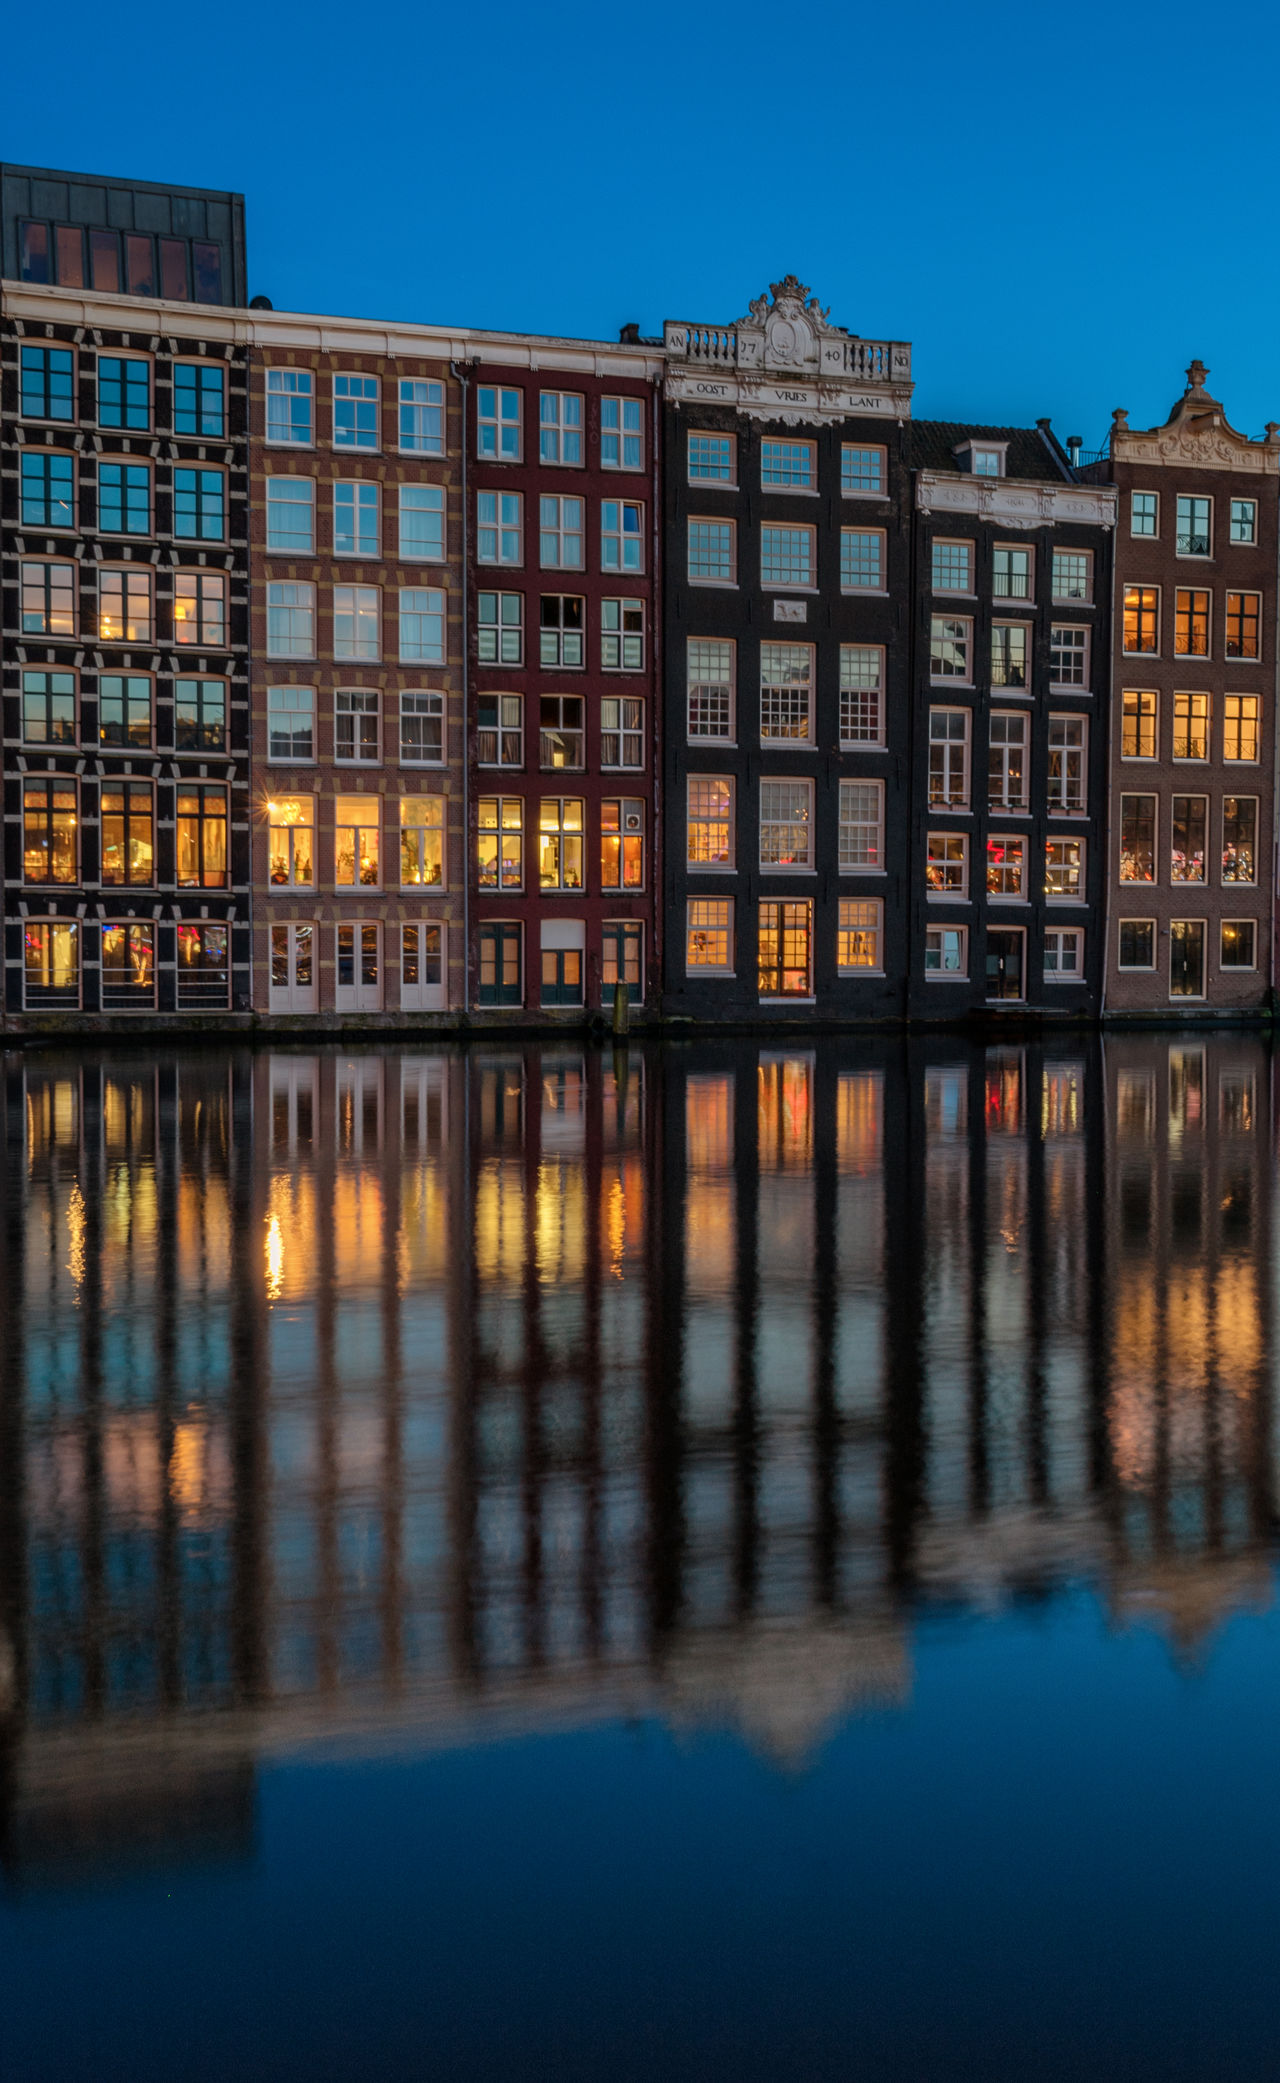 Beautiful stock photos of amsterdam, reflection, building exterior, water, city